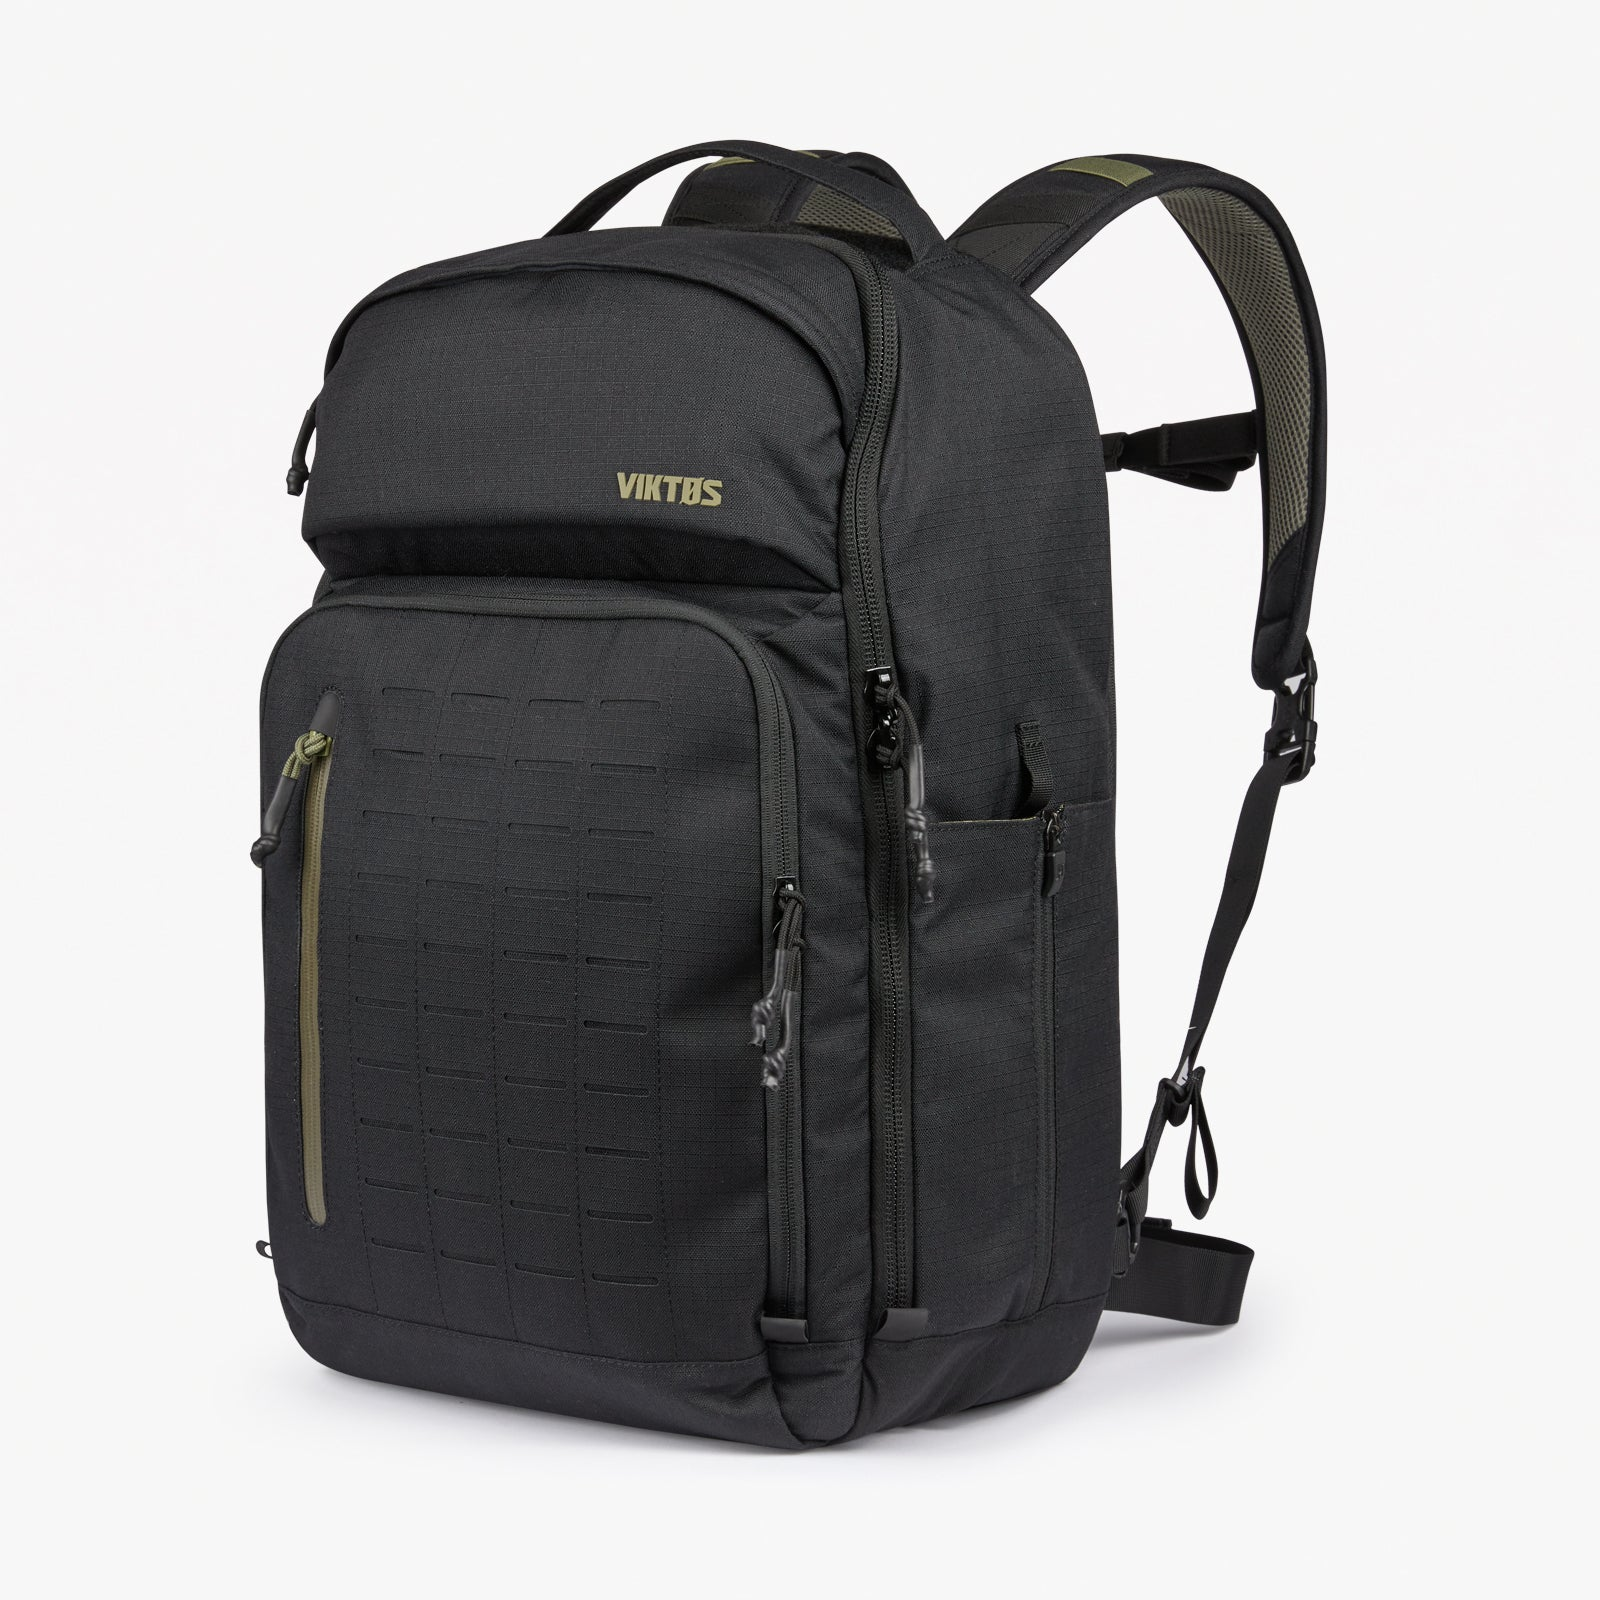 Viktos Perimeter 40 Backpack